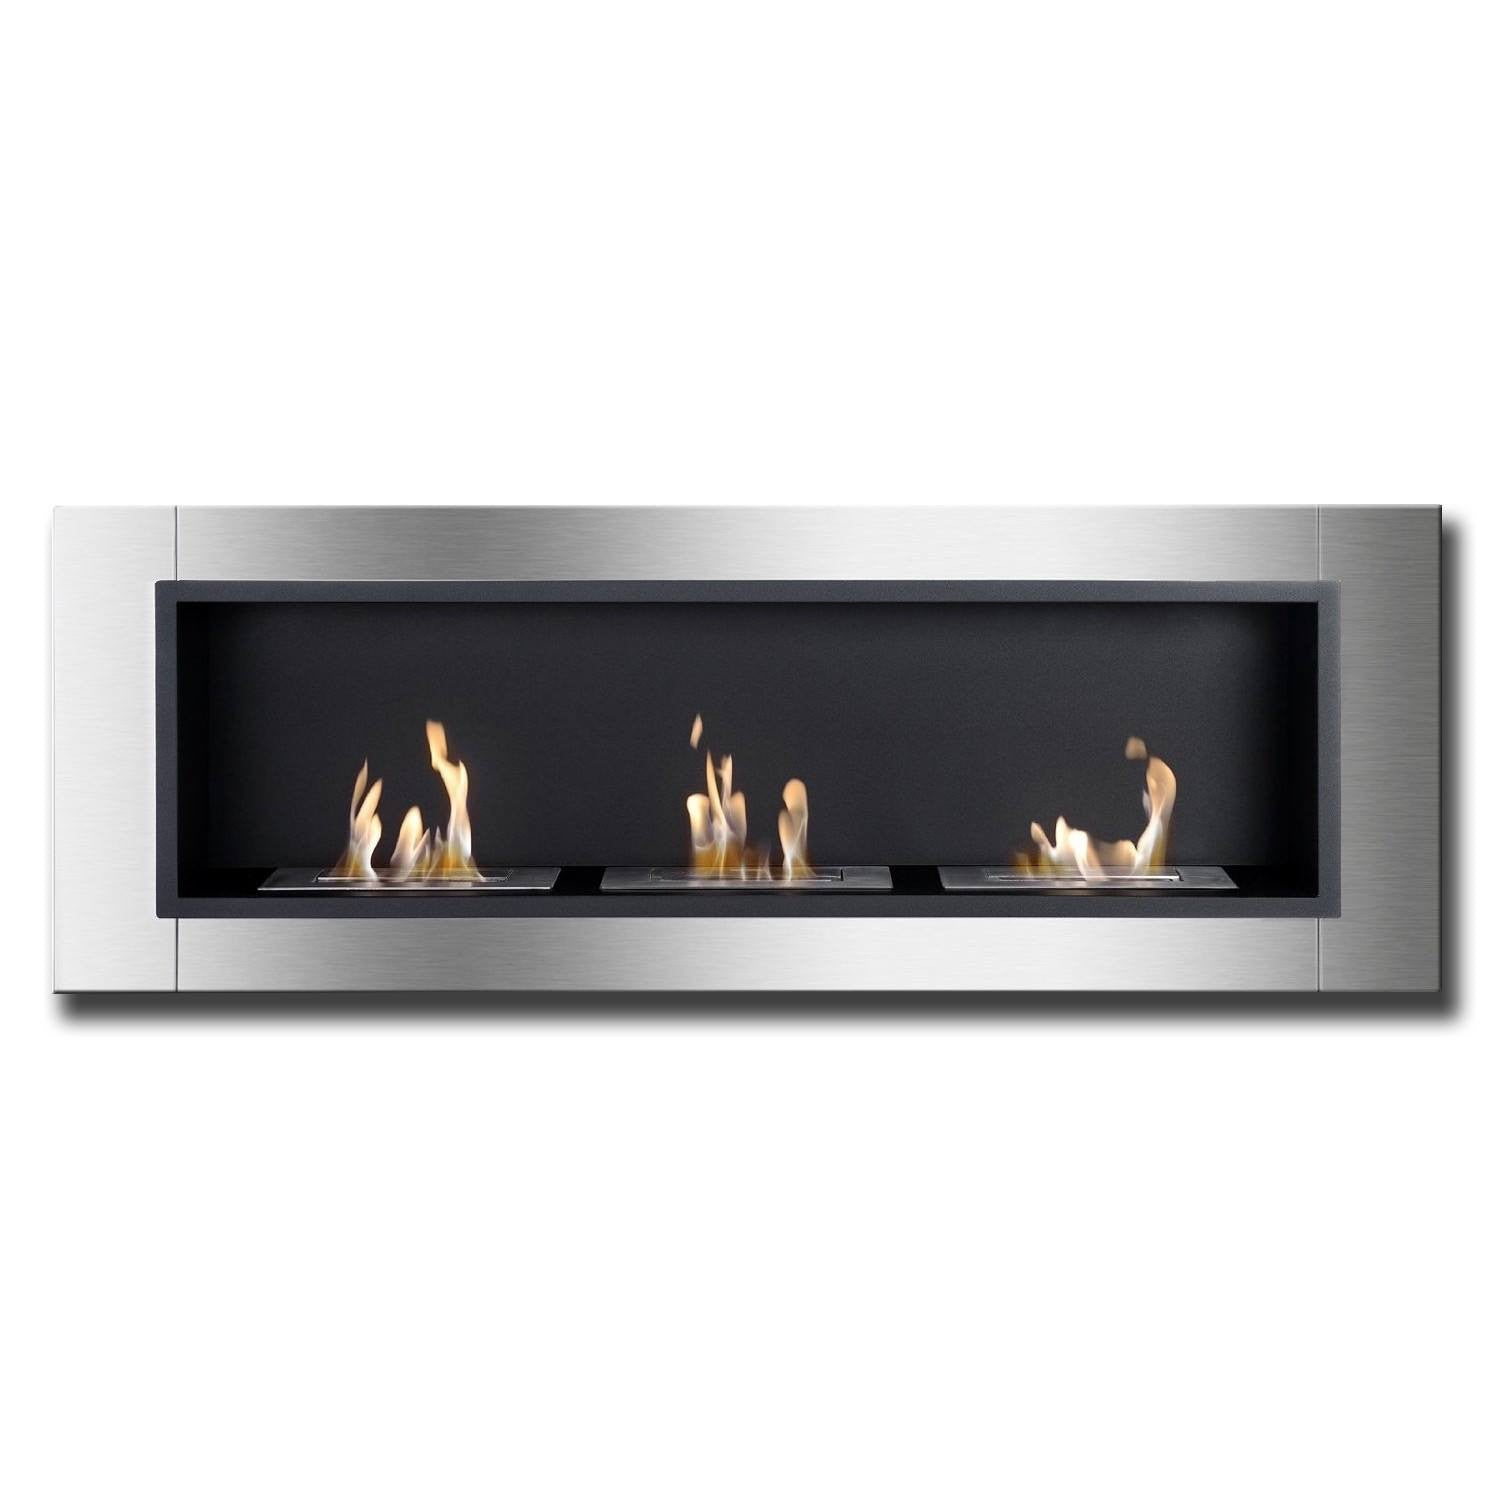 Free Shipping and No Sales Tax on the Ignis Ardella Bio Ethanol Recessed Wall Fireplace on Ethanol Fireplace Pros